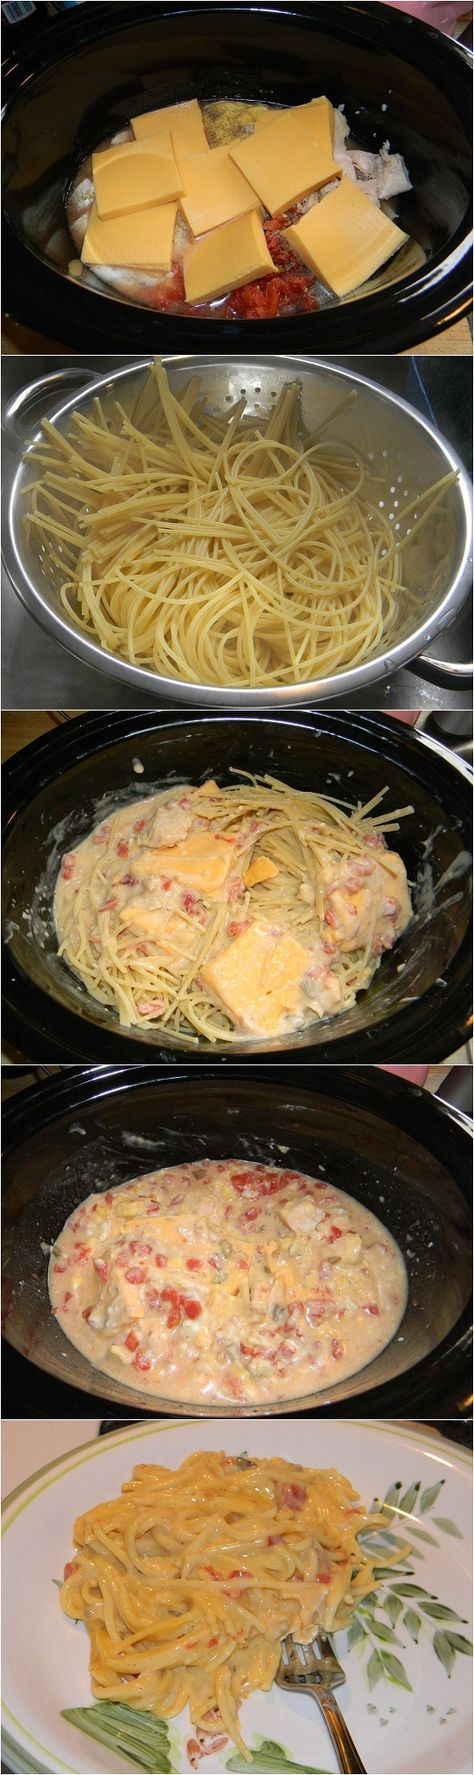 Crock pot Cheesy Chicken Spaghetti (I would use chopped cooked chicken, not canned)